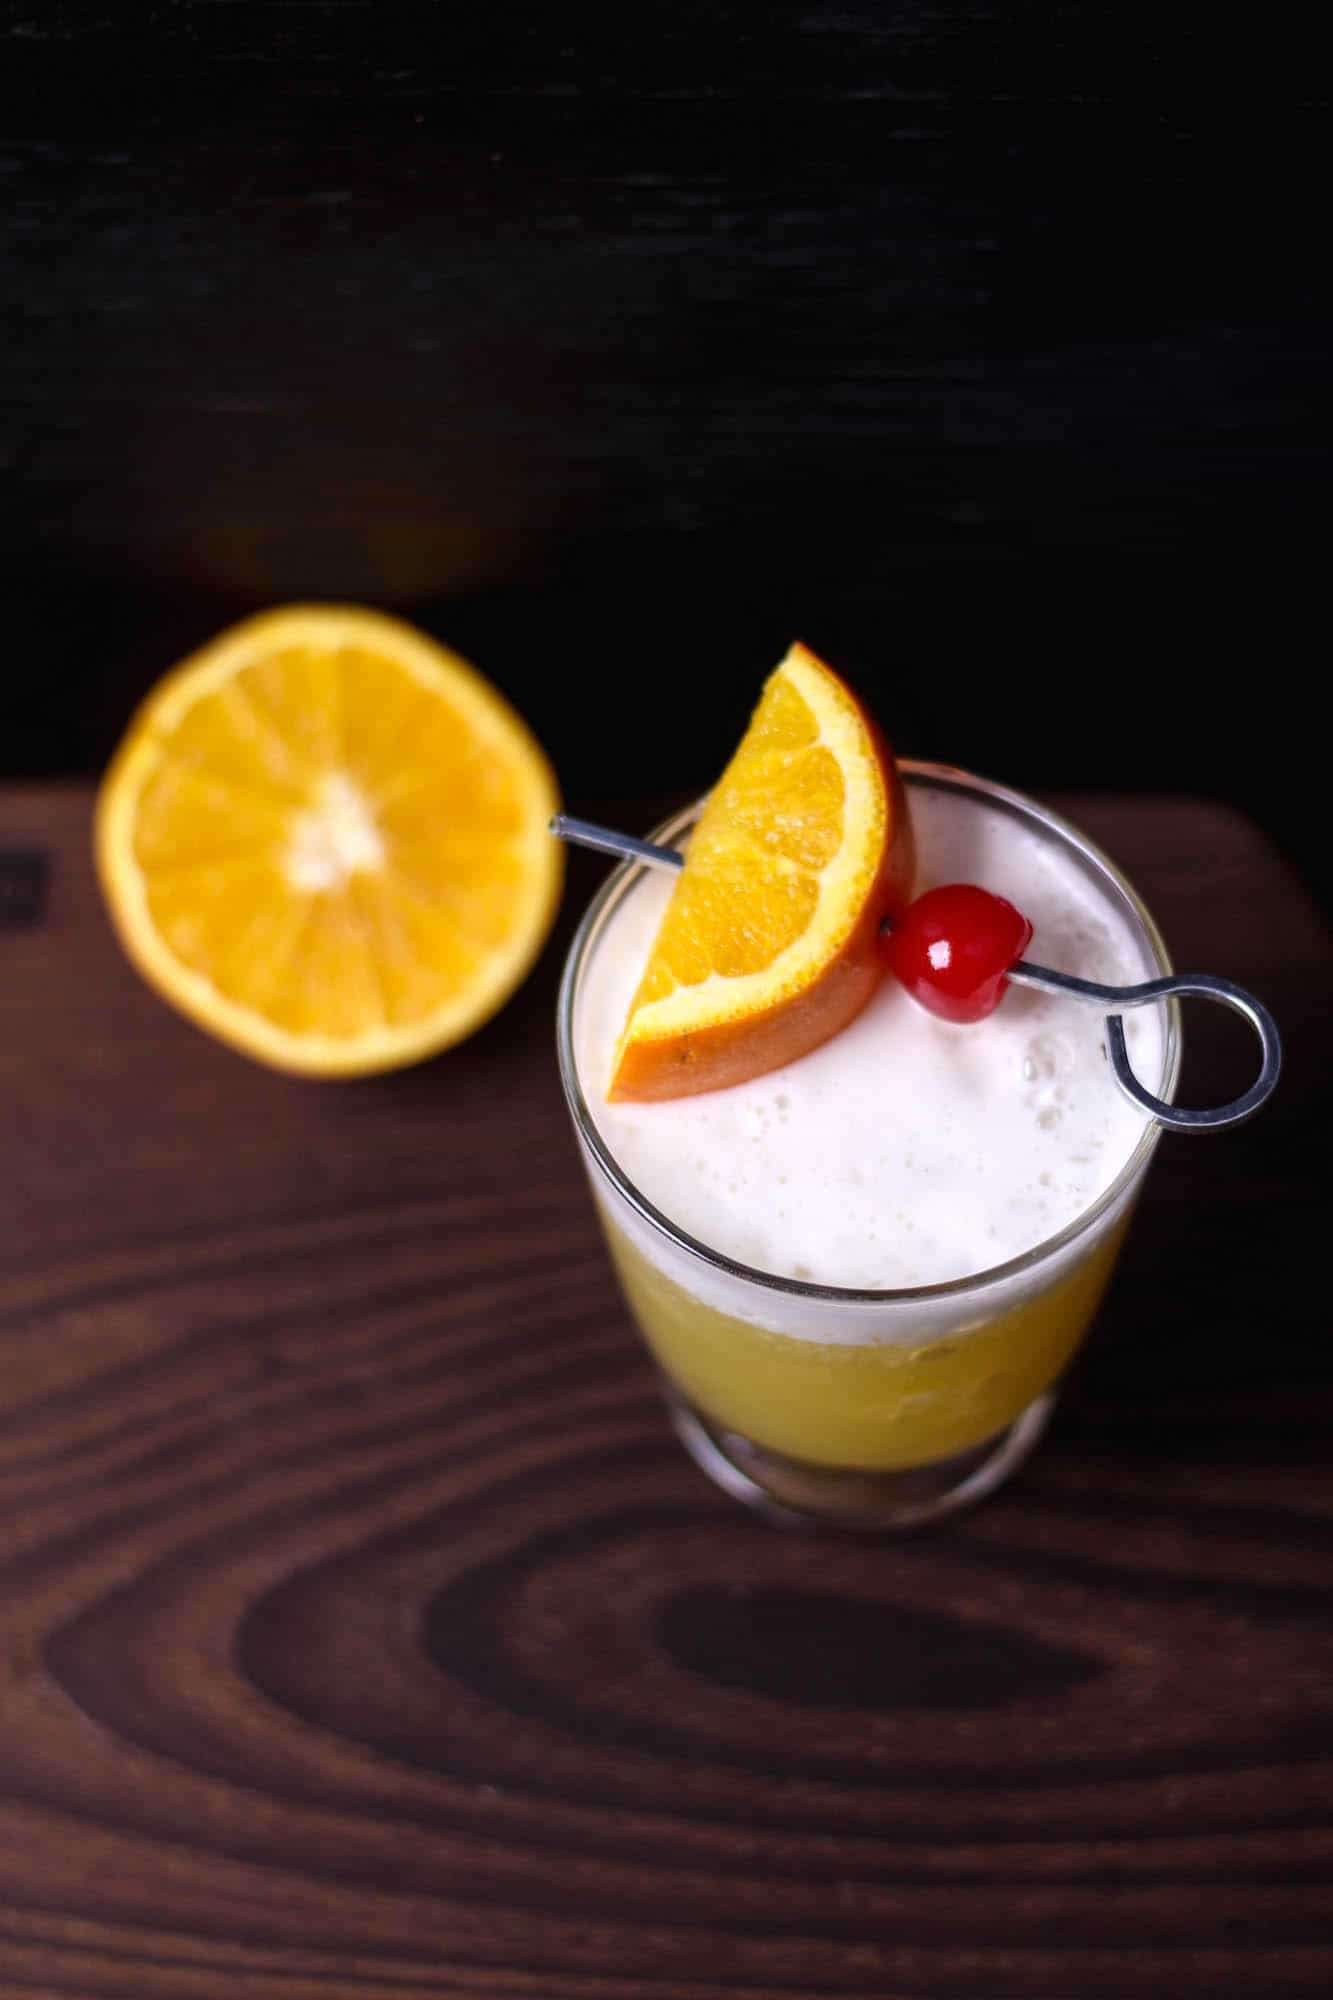 This delicious whiskey sour recipe goes down so easily! Flavored with orange juice and topped with whipped cream and a cherry, it's a tasty cocktail treat.